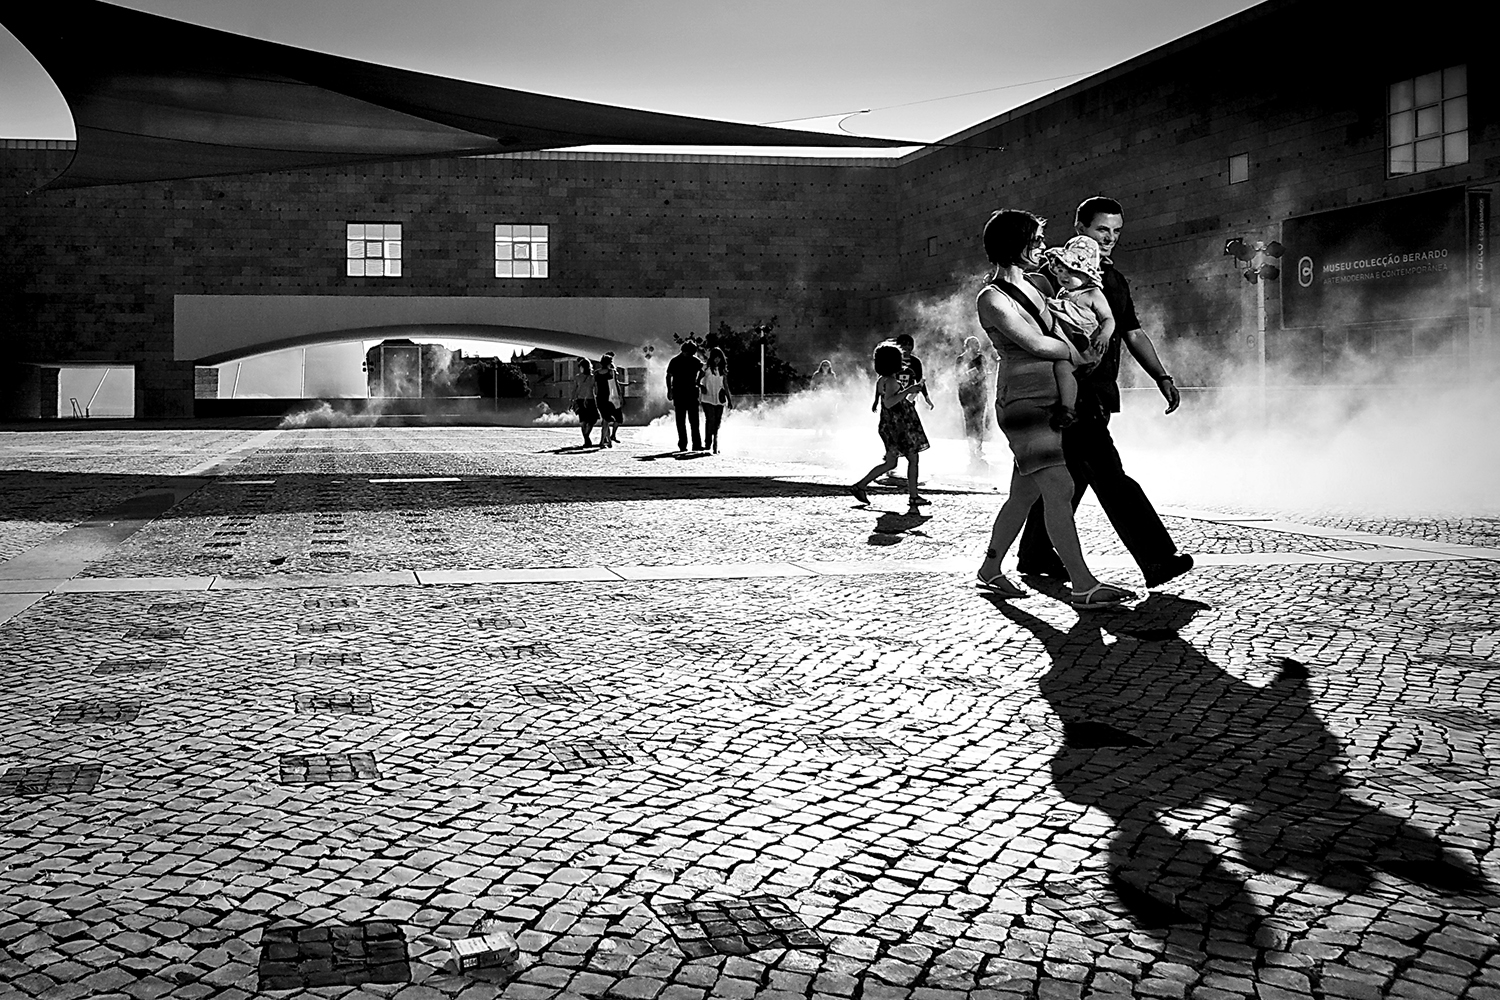 <h5>familia feliz | happy family, Lisboa 2009</h5>